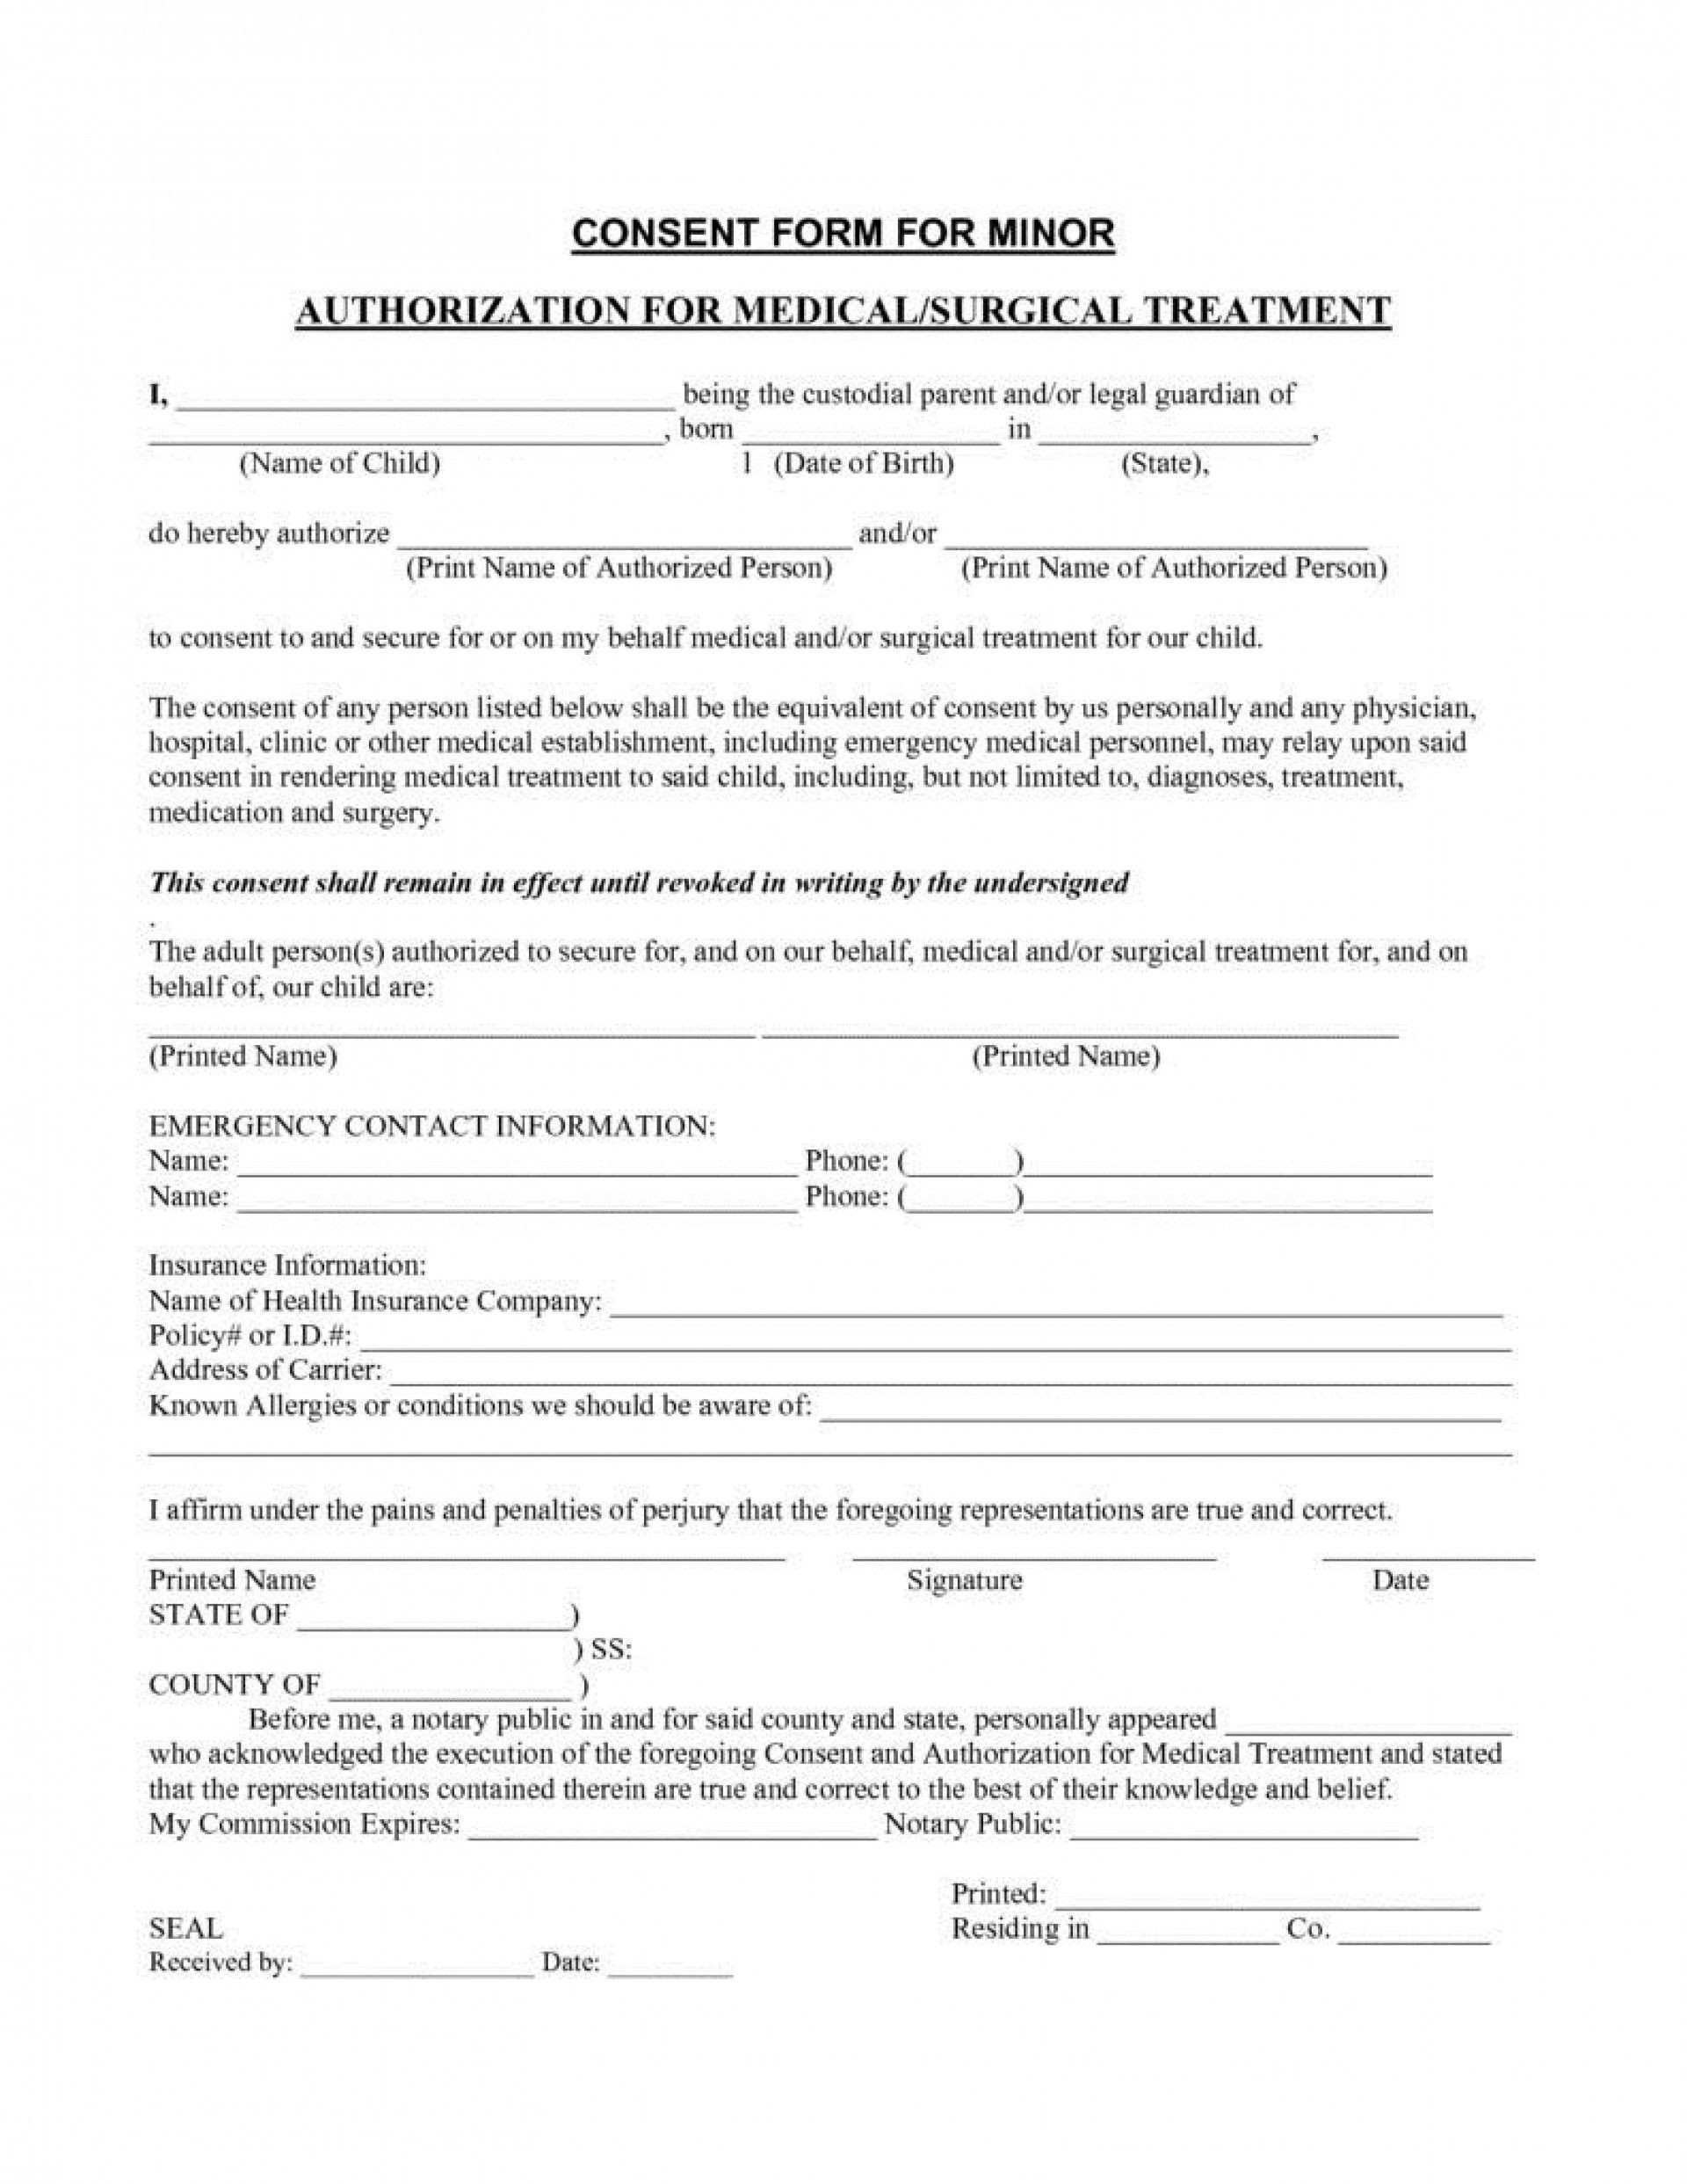 006 Amazing Medical Treatment Authorization And Consent Form Template Design 1920